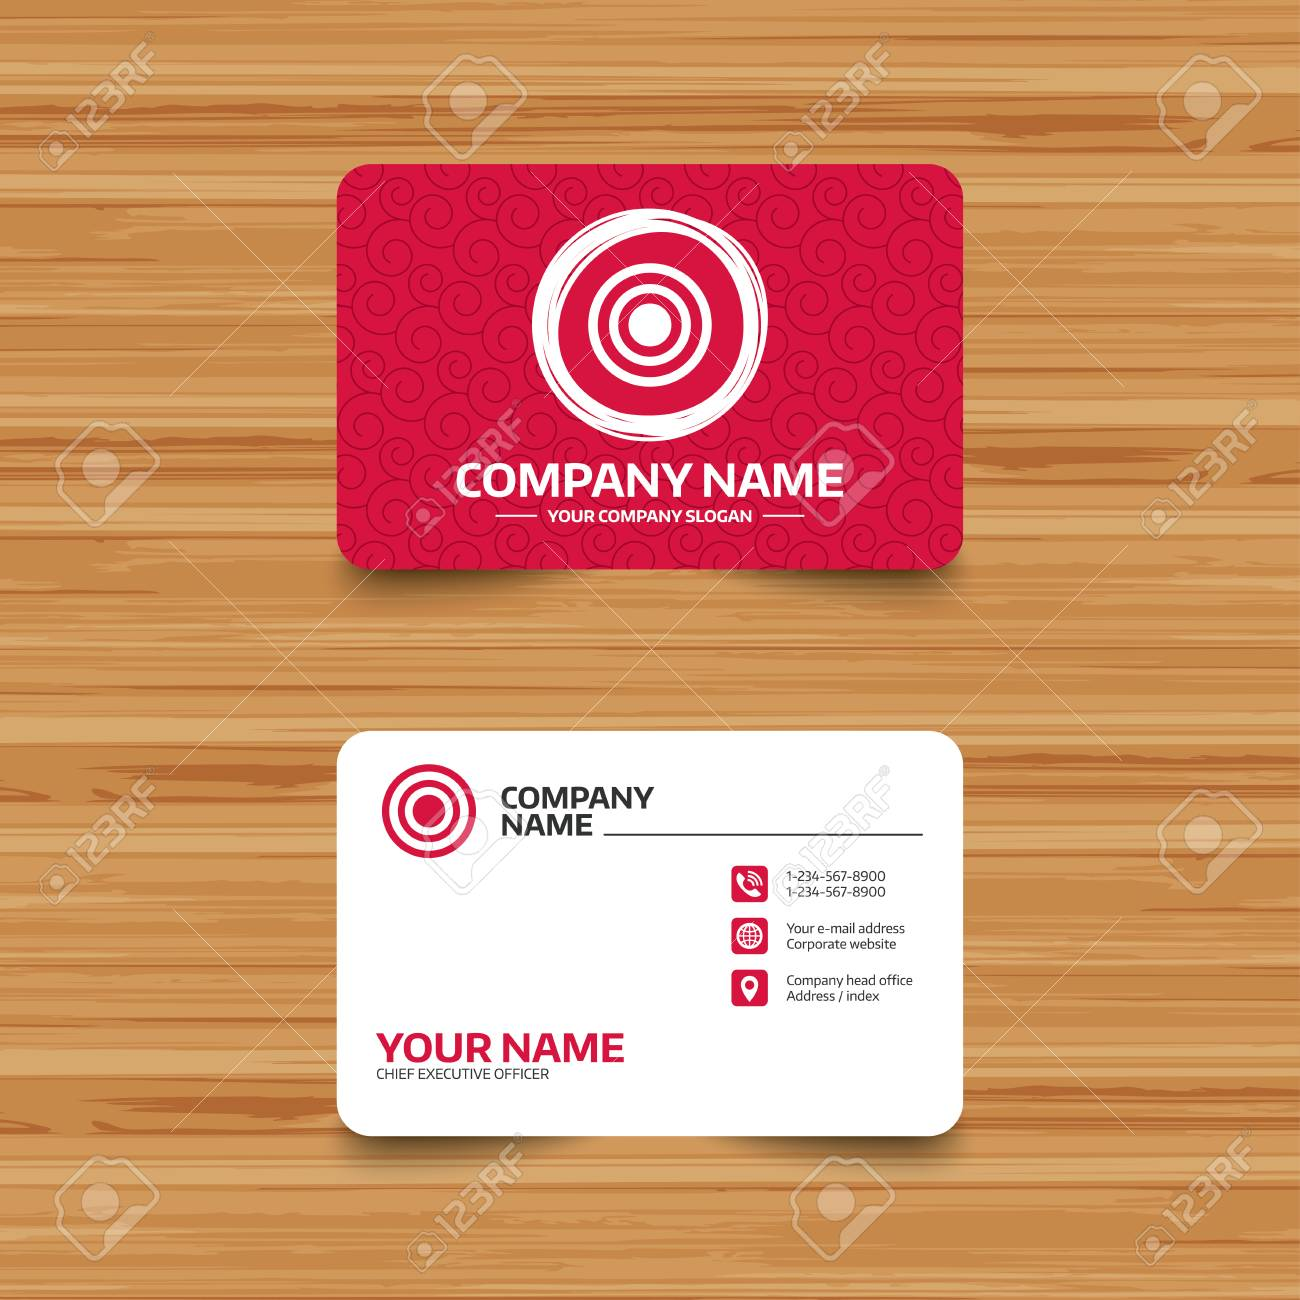 Business card template with texture target aim sign icon darts business card template with texture target aim sign icon darts board symbol phone colourmoves